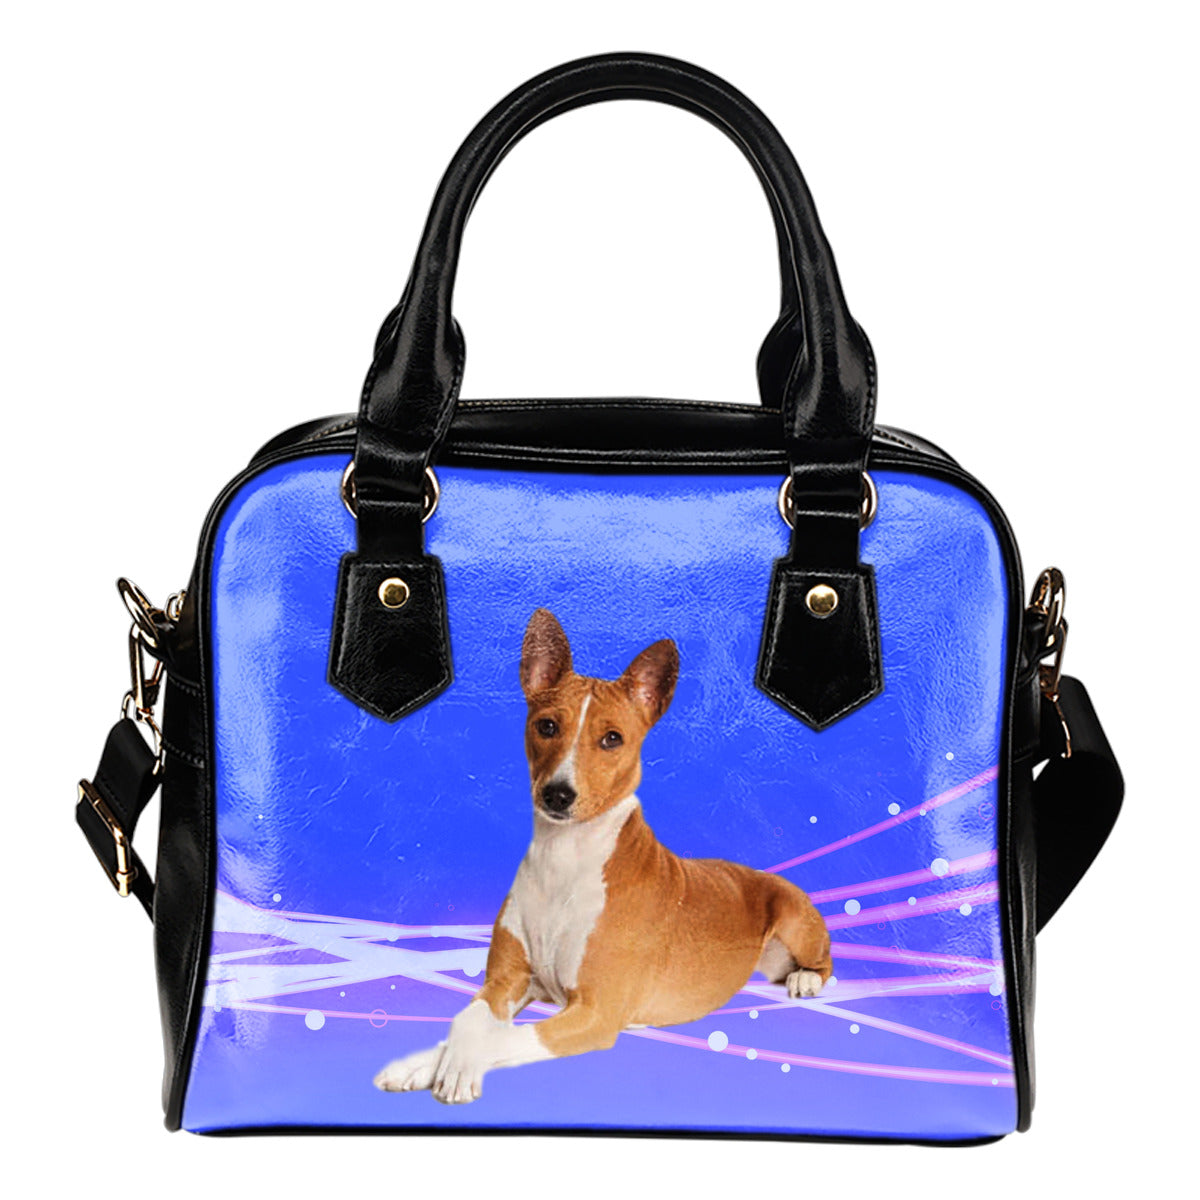 Basenji Shoulder Bag - Blue